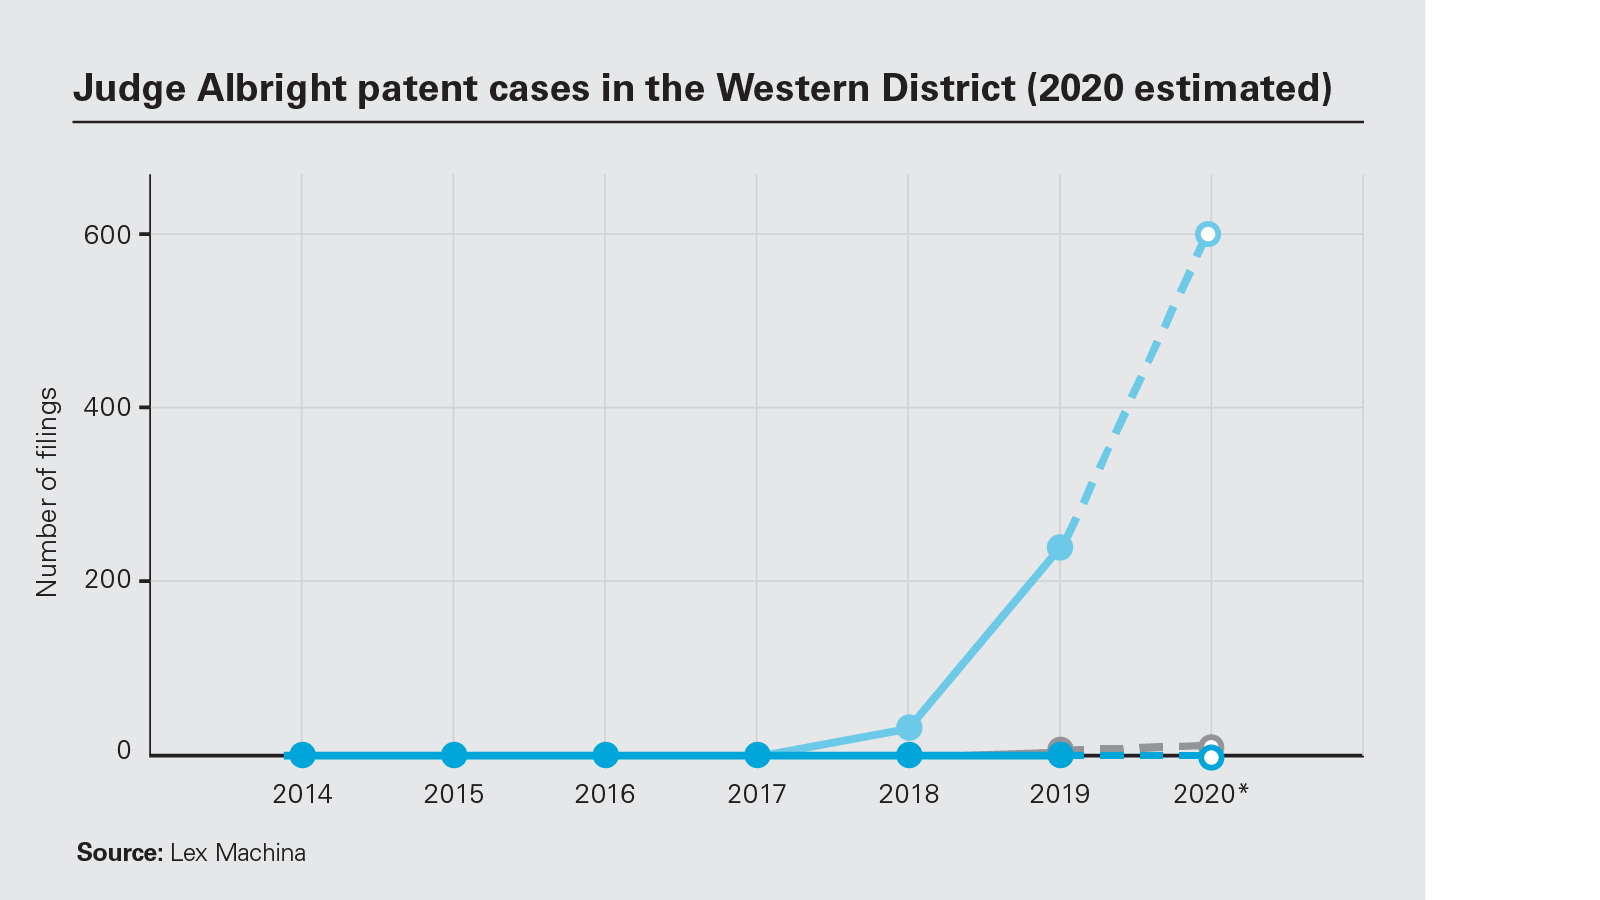 Judge Albright patent cases in the Western District chart